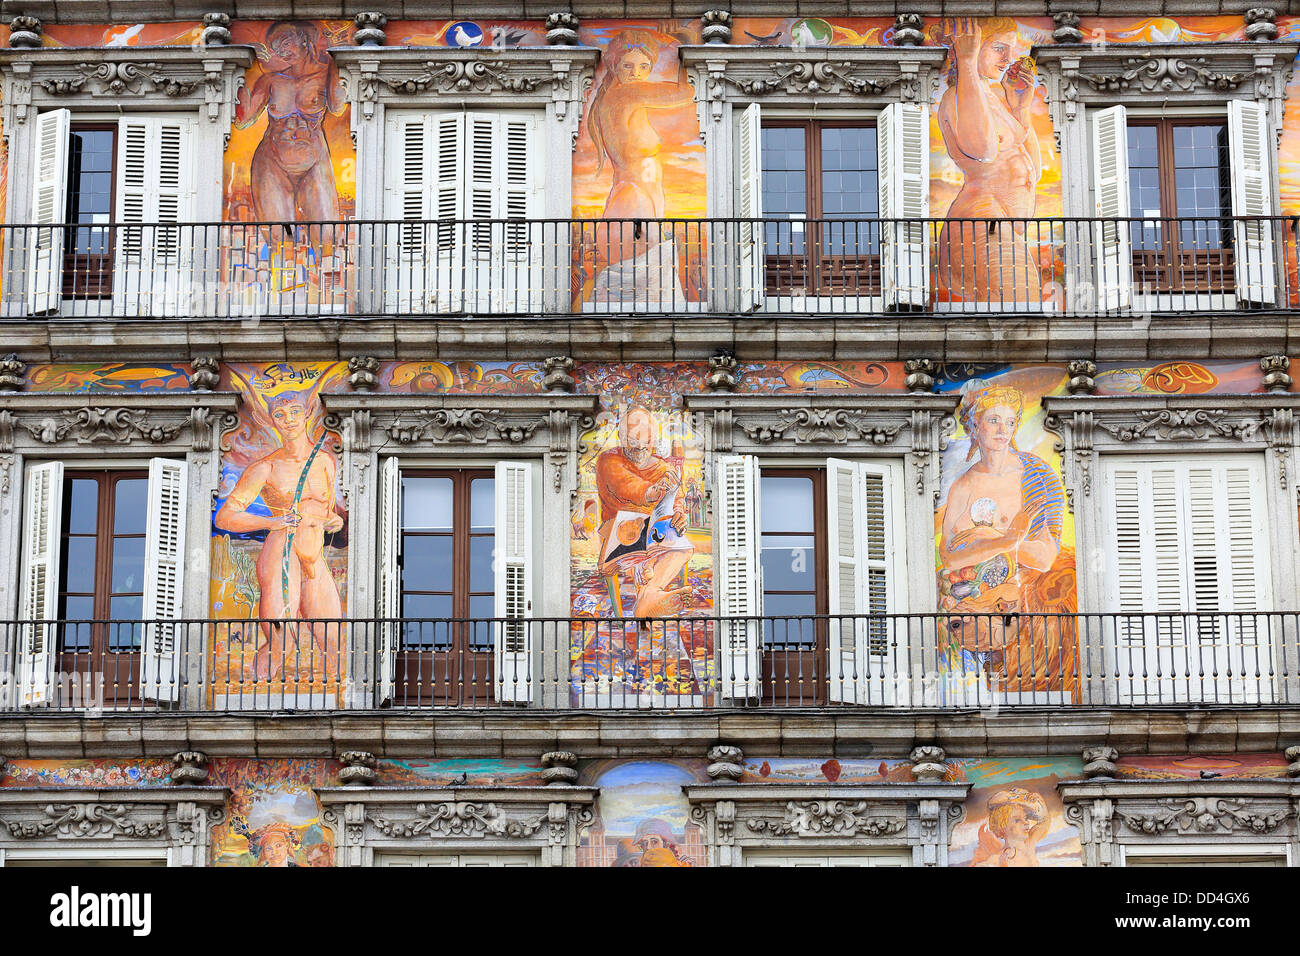 Creatively painted facade of building inside Plaza Major, Madrid - Stock Image